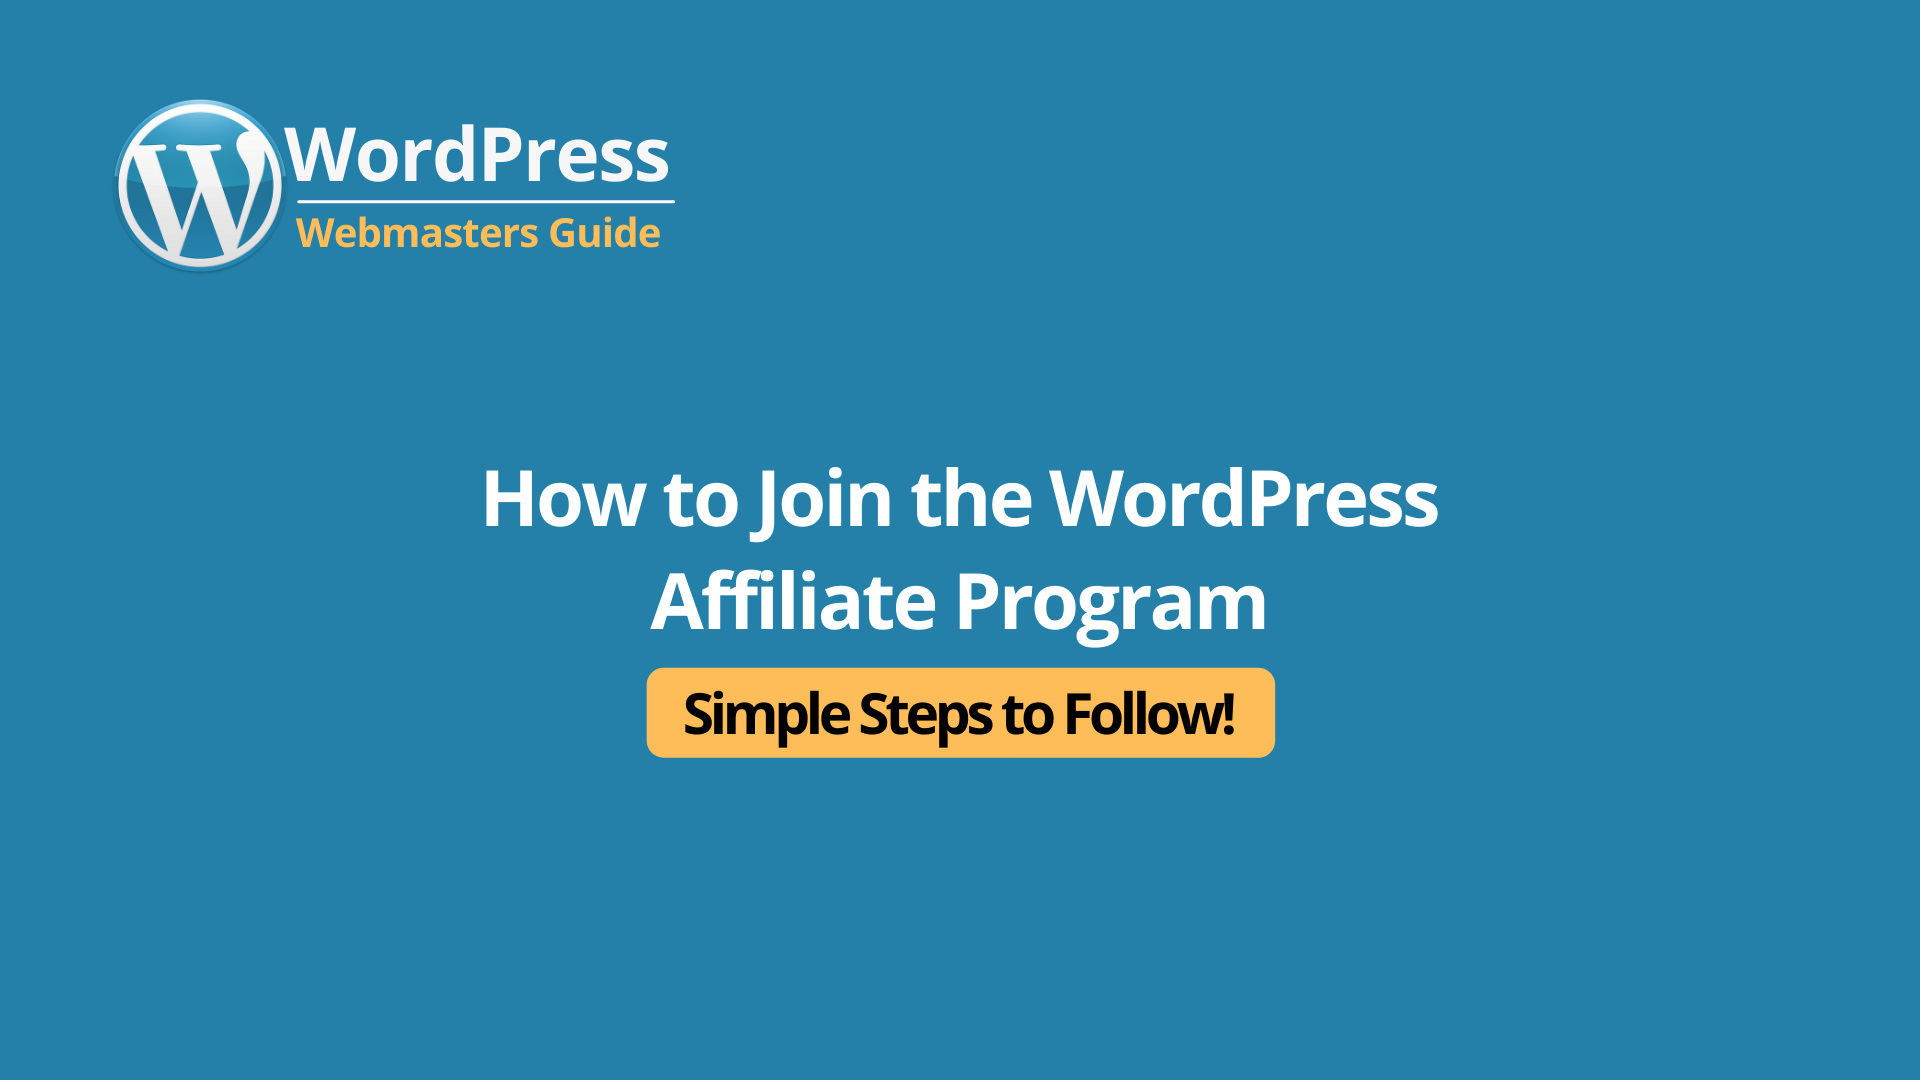 How to Join the WordPress Affiliate Program